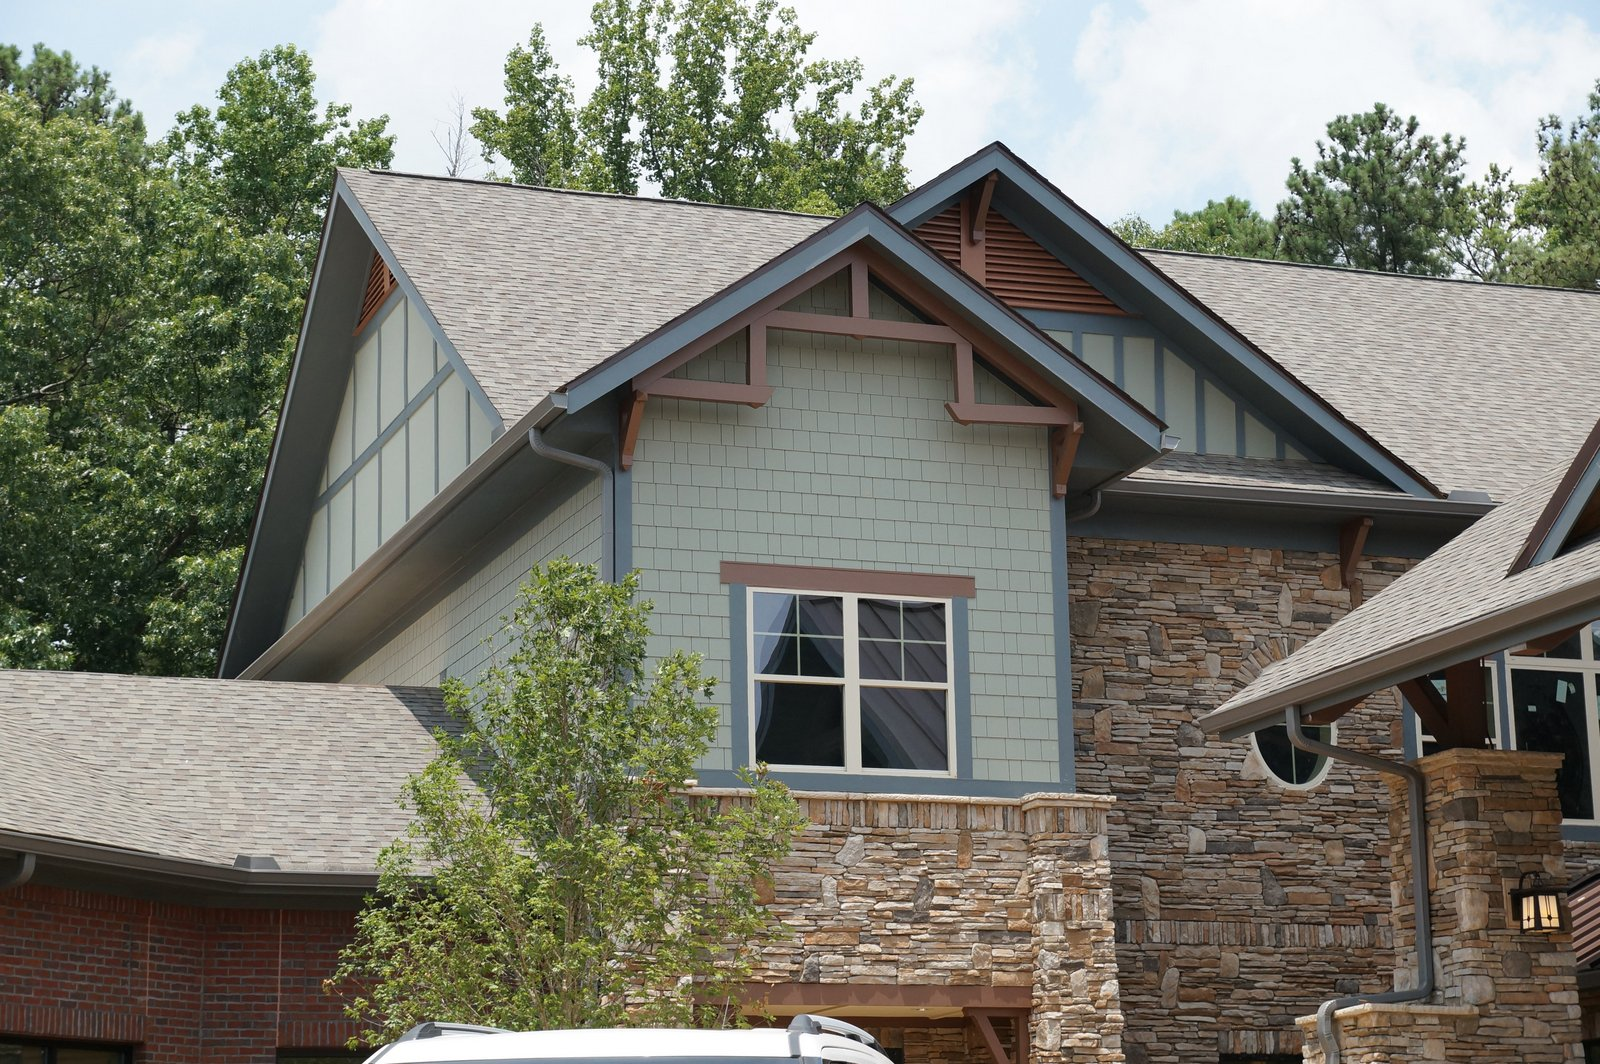 Atlanta Roofing Repair & Roof Replacement. Best Cosmetic Dentist In San Antonio. How Can You Become A Social Worker. Professional Carpet Cleaners Reviews. Ford Dealership In Breaux Bridge La. Max Dose Of Epinephrine Spy Computer Software. Outsourced Software Development Company. Masters Of Finance Programs Duke Stock Quote. Cell Phone Battery Backup Reviews